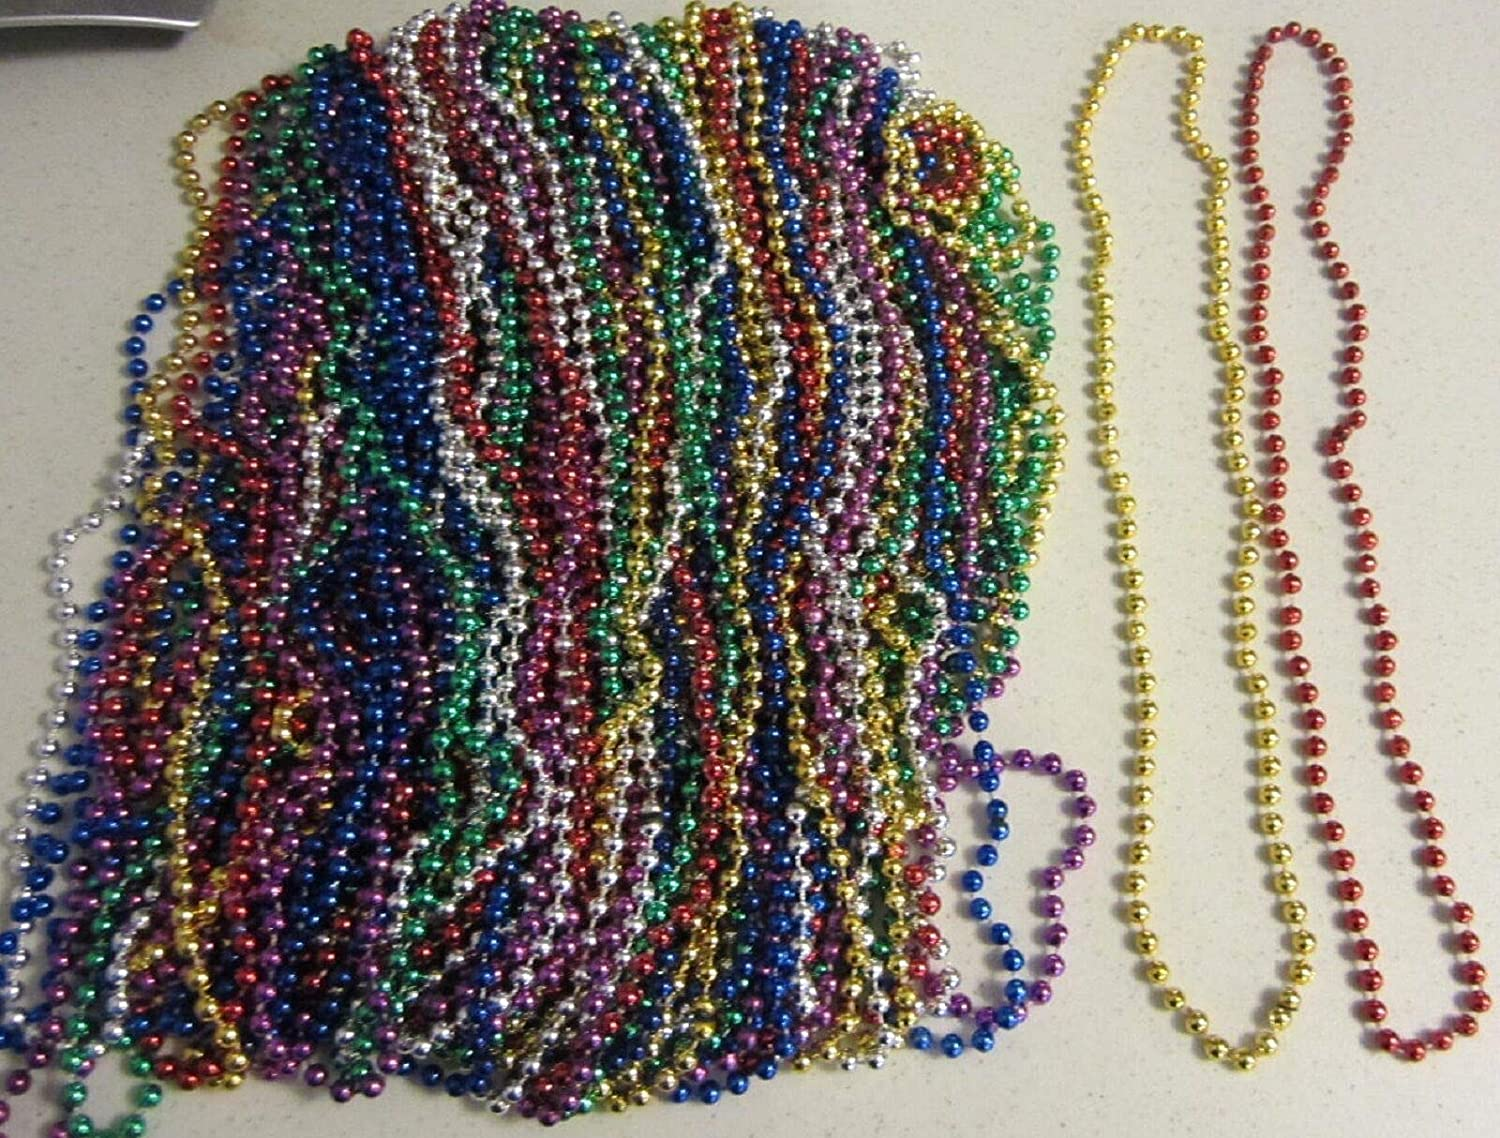 50 Mardi SEAL limited product GRAS Beads Necklaces Motorcycle Bike Throw All stores are sold B Rally Bead